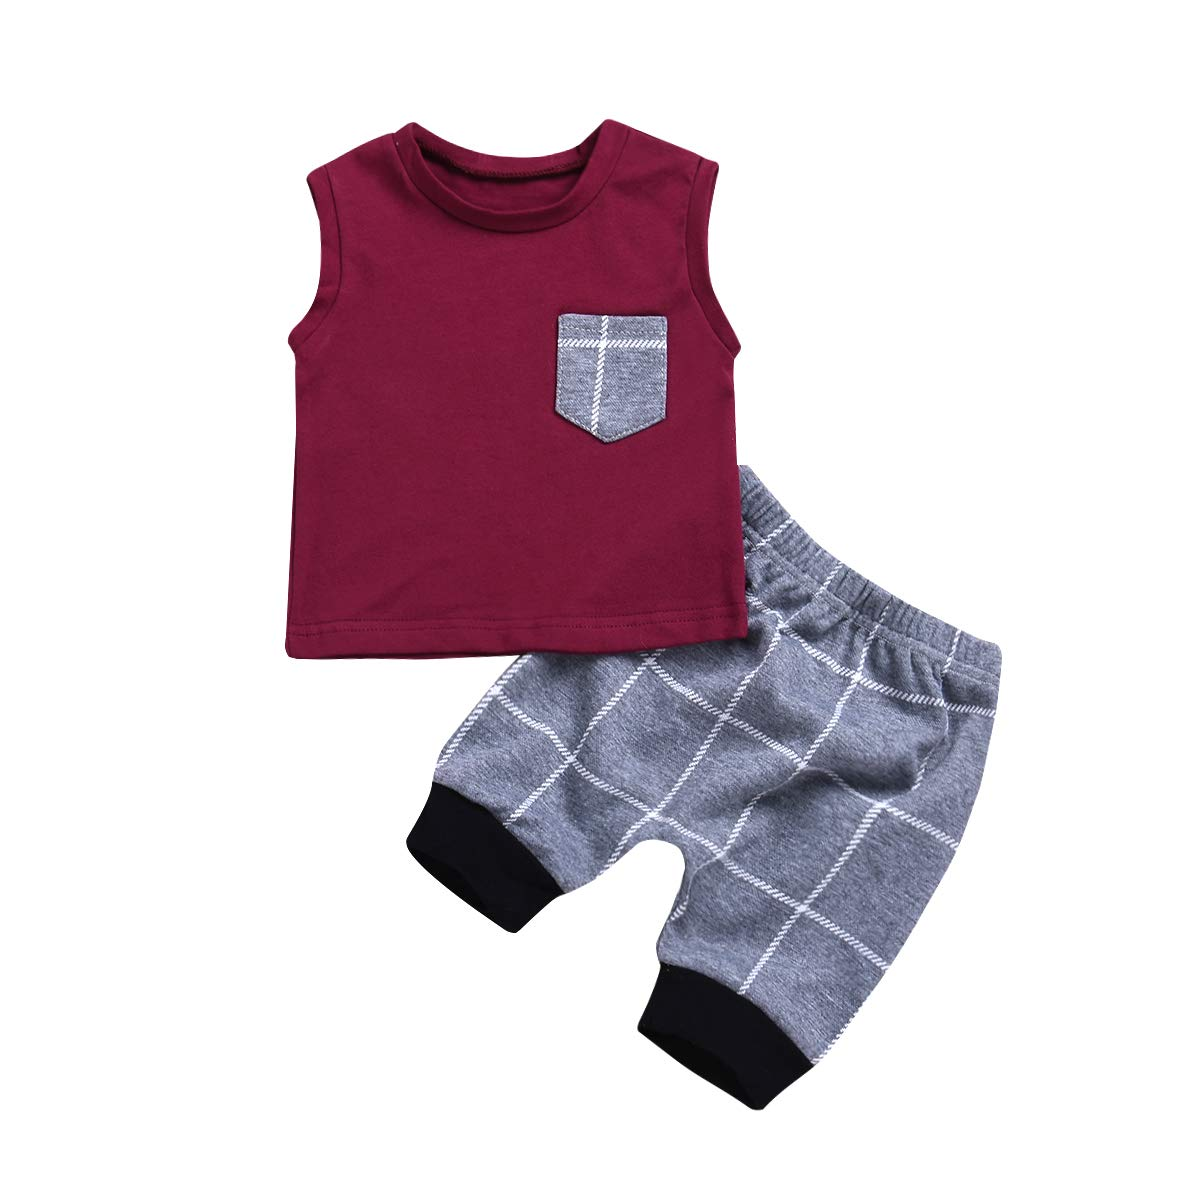 Infant Baby Boys Summer Casual Clothes Set Plaid Pocket Vest Tops +Shorts … (18-24 months, Wine Red)